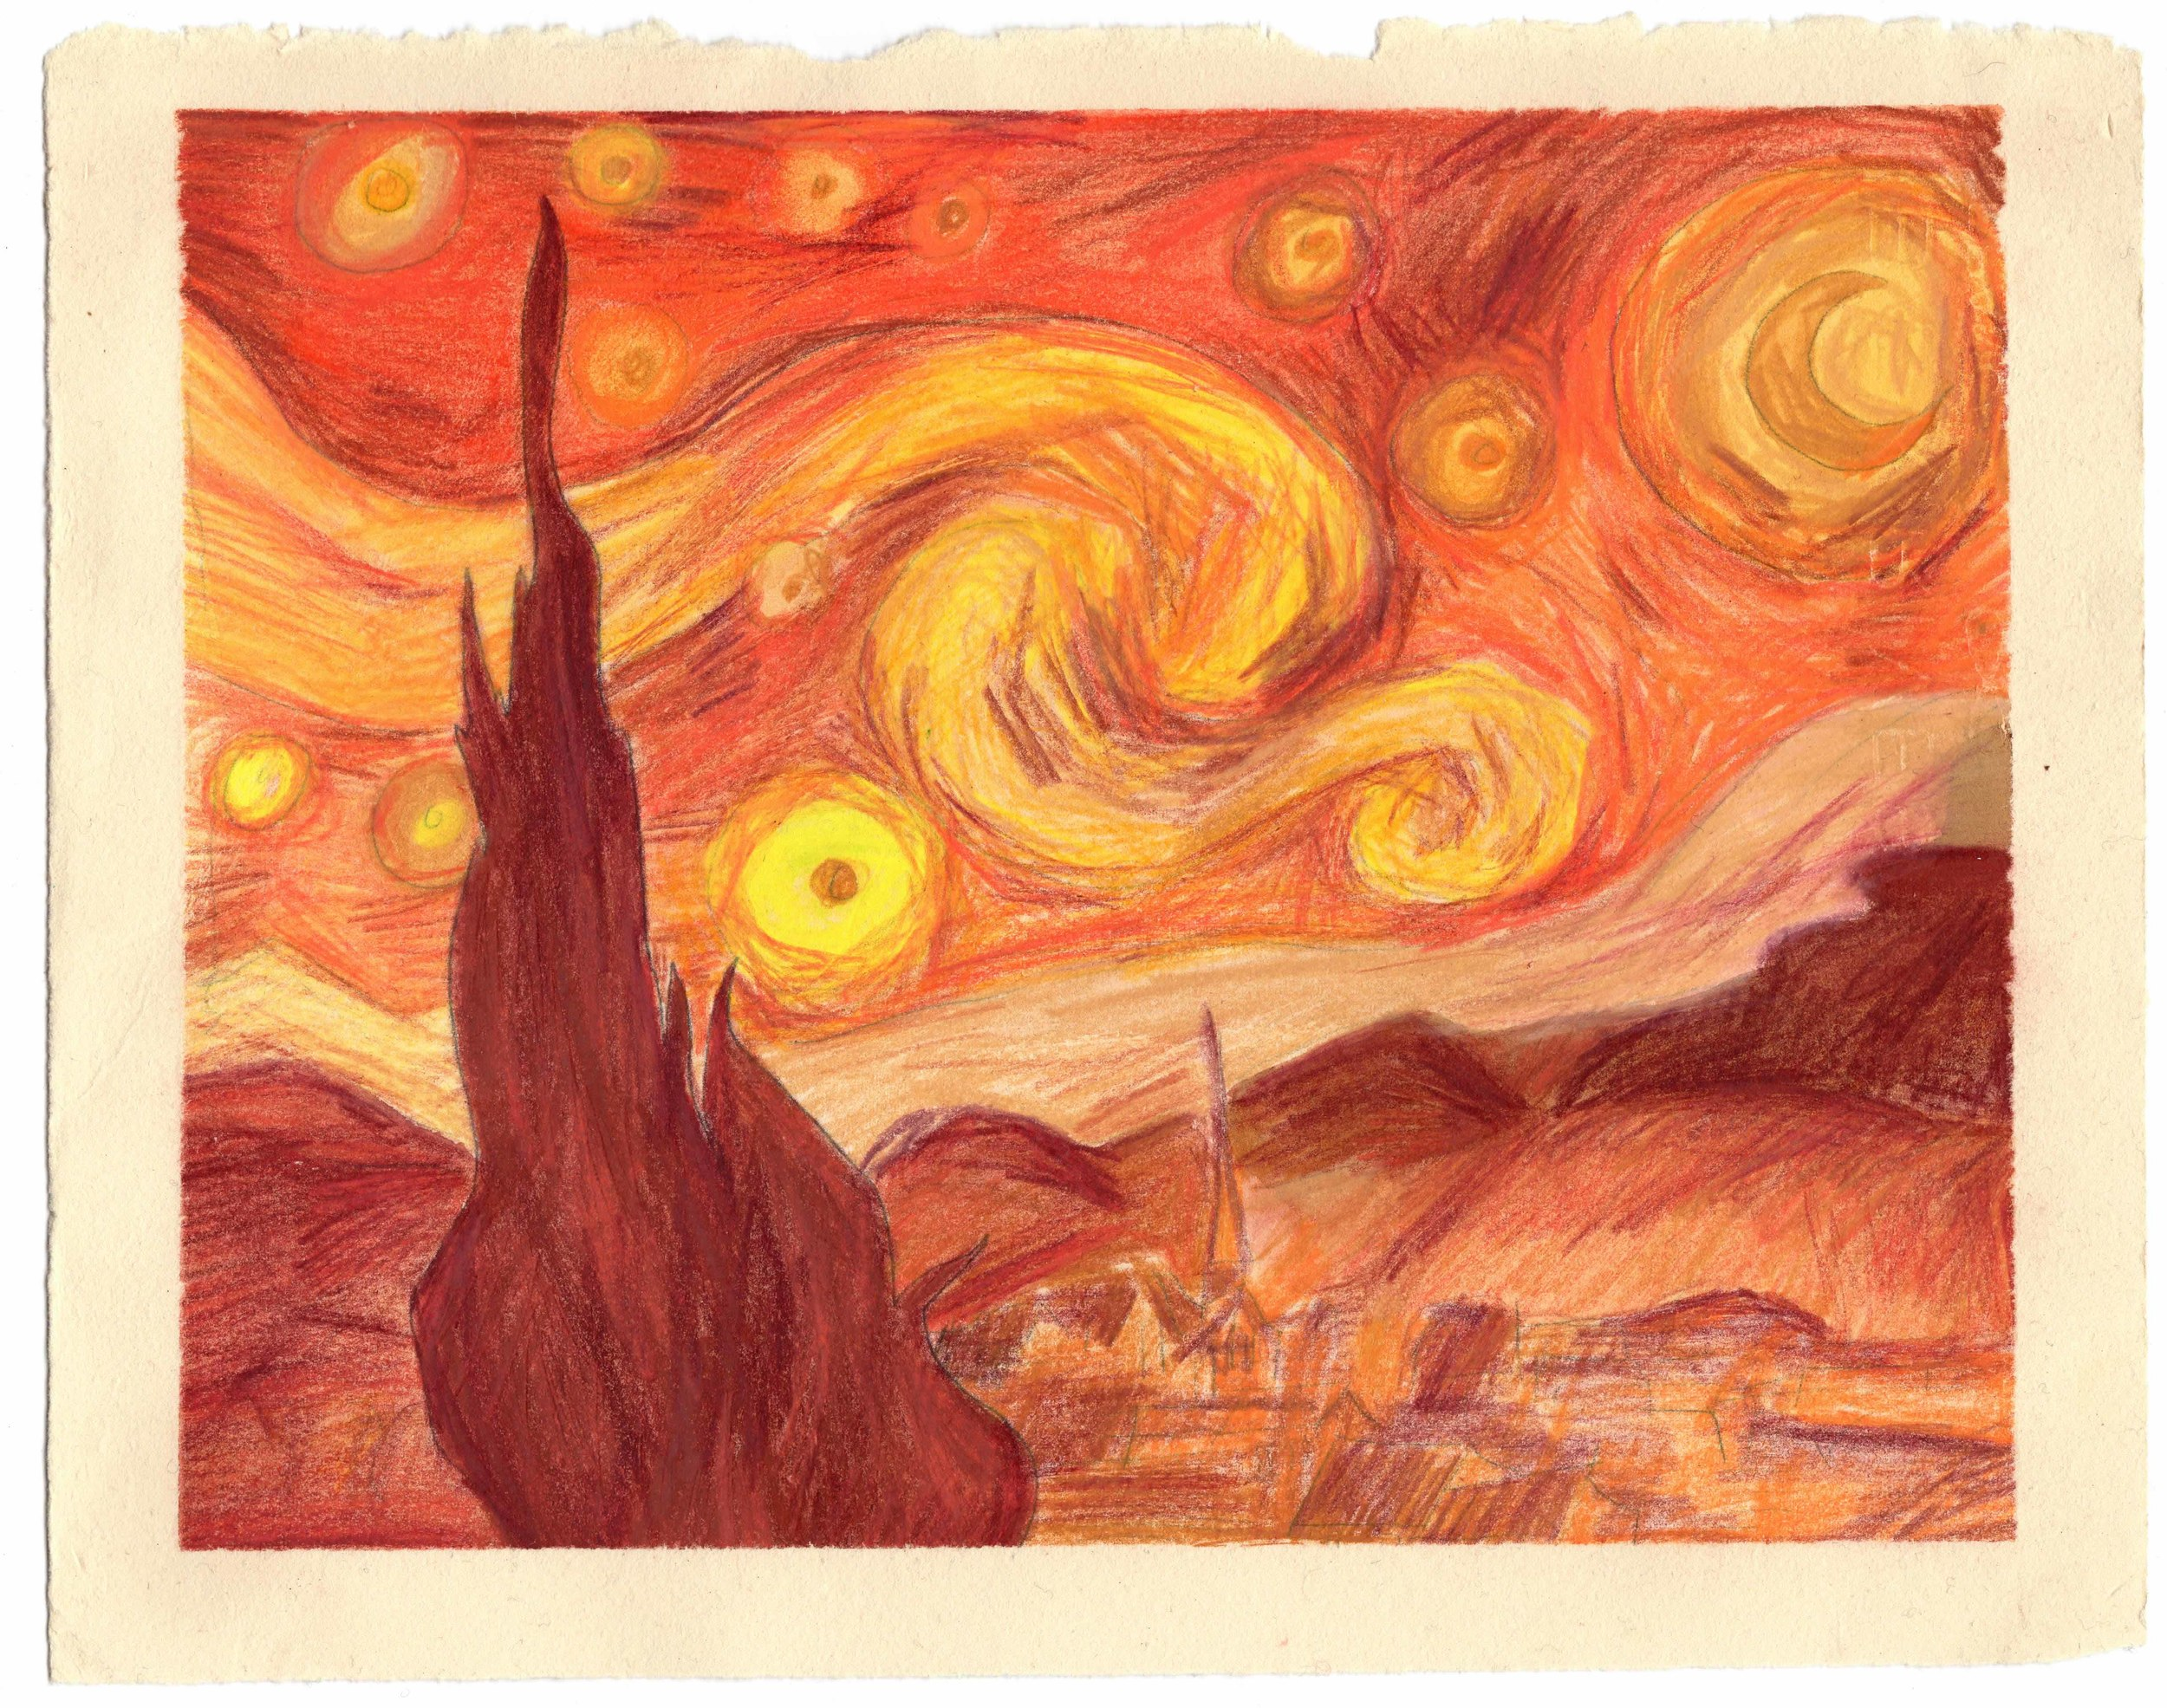 Starry Night Exercise // V  an Gogh's starry night, what happens with a warm scheme?   reproduction. colored pencil, pastel, water color. 9X12 inches (22.8X30.5cm)